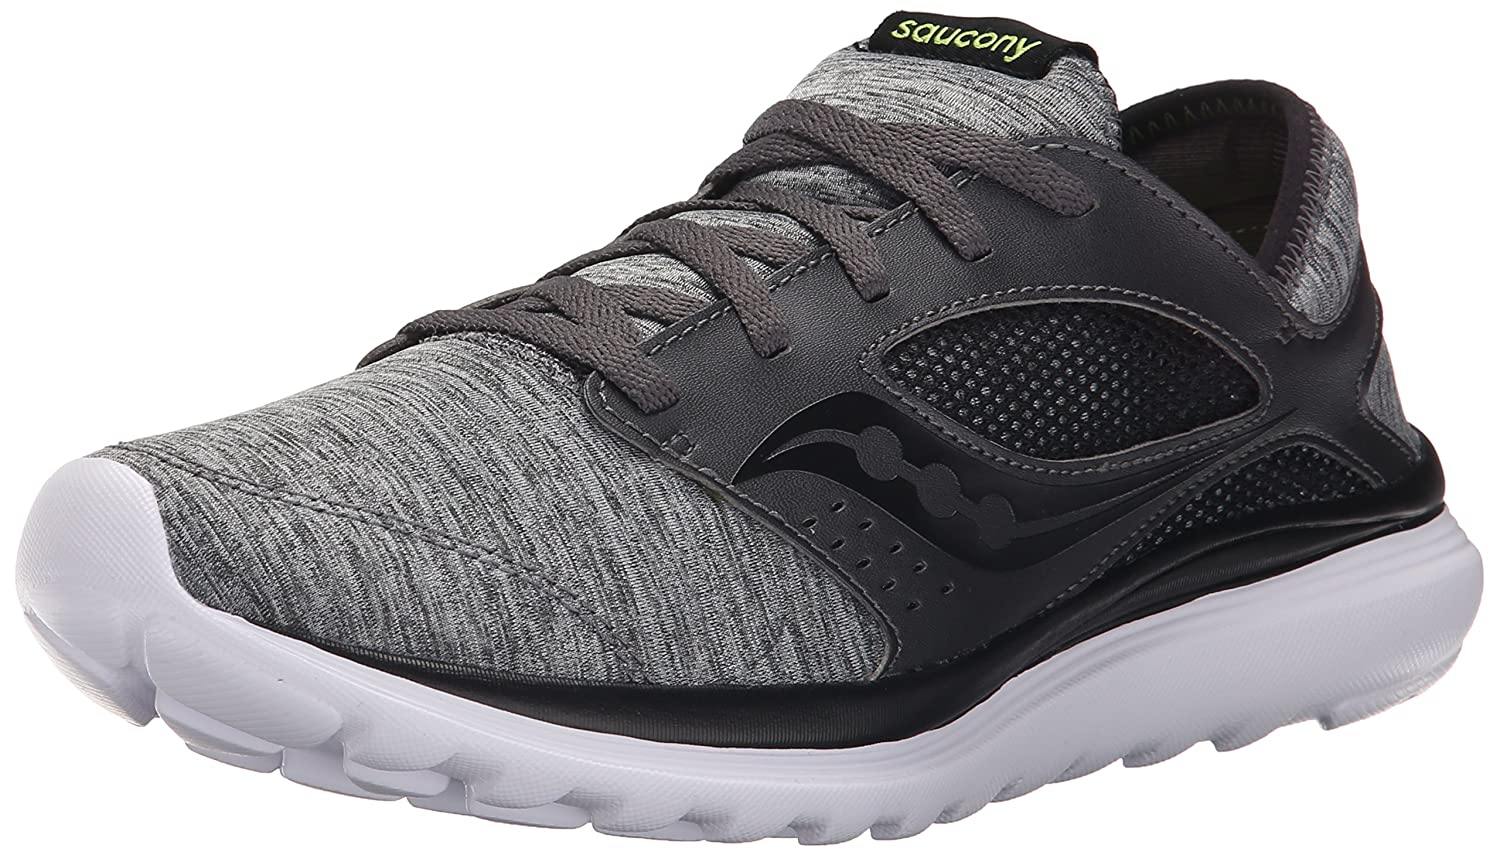 Saucony Men's Kineta Relay Running Shoe B00YBHLCYQ 8 D(M) US|Heather/Black